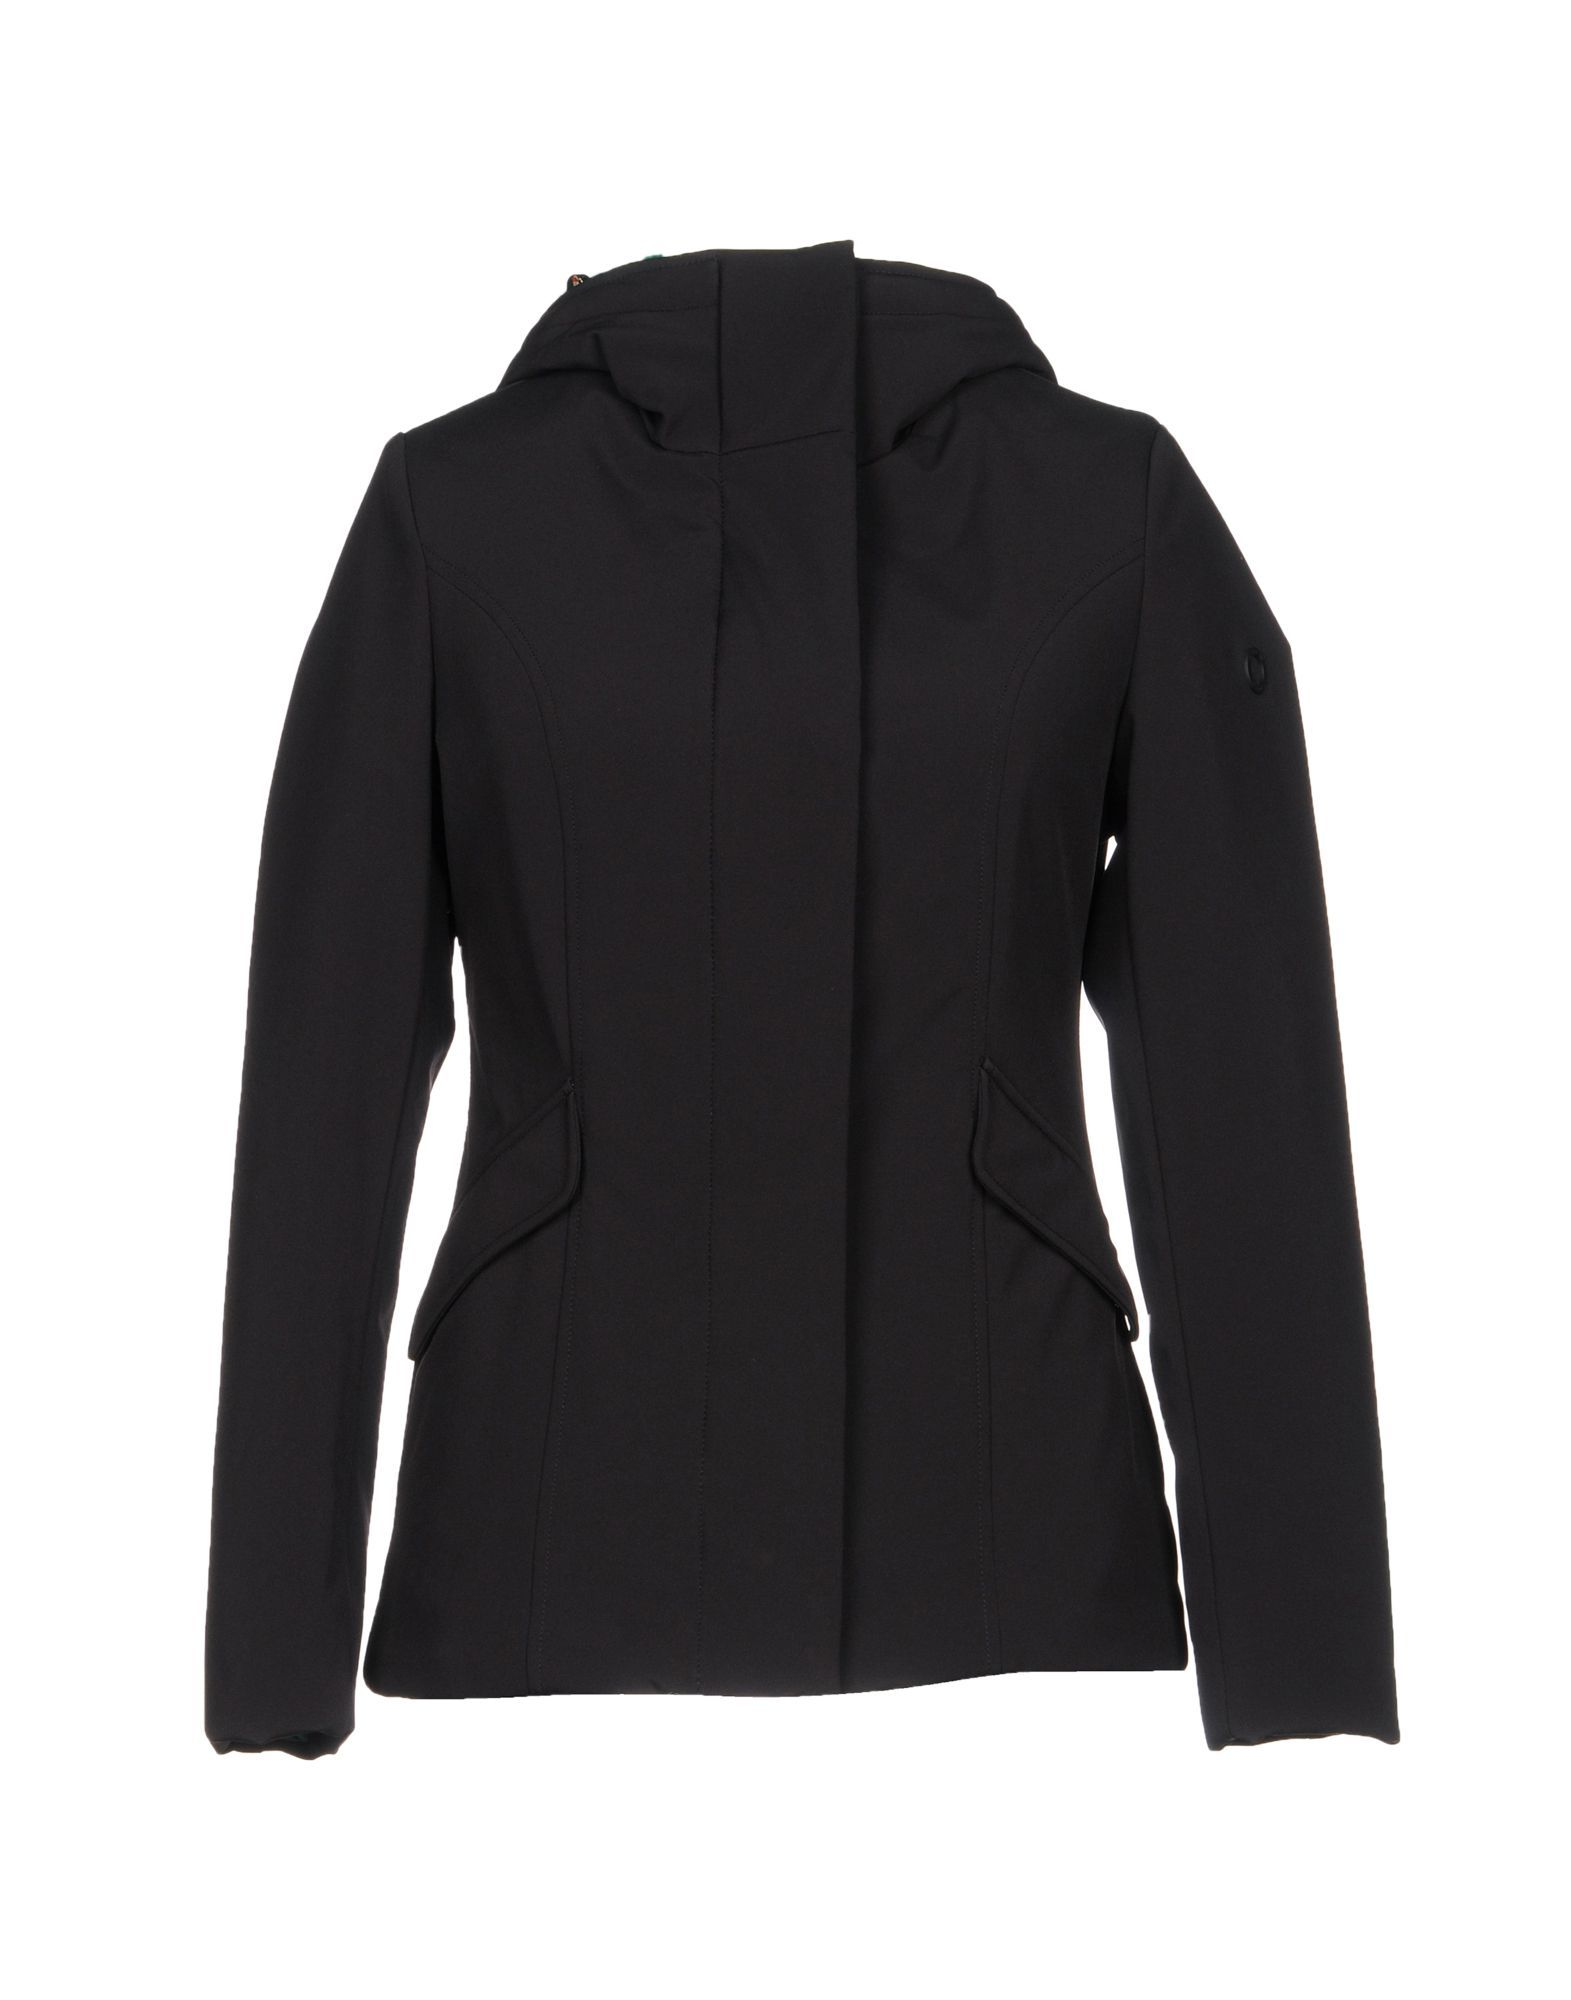 COATS & JACKETS Up To Be Black Woman Polyester